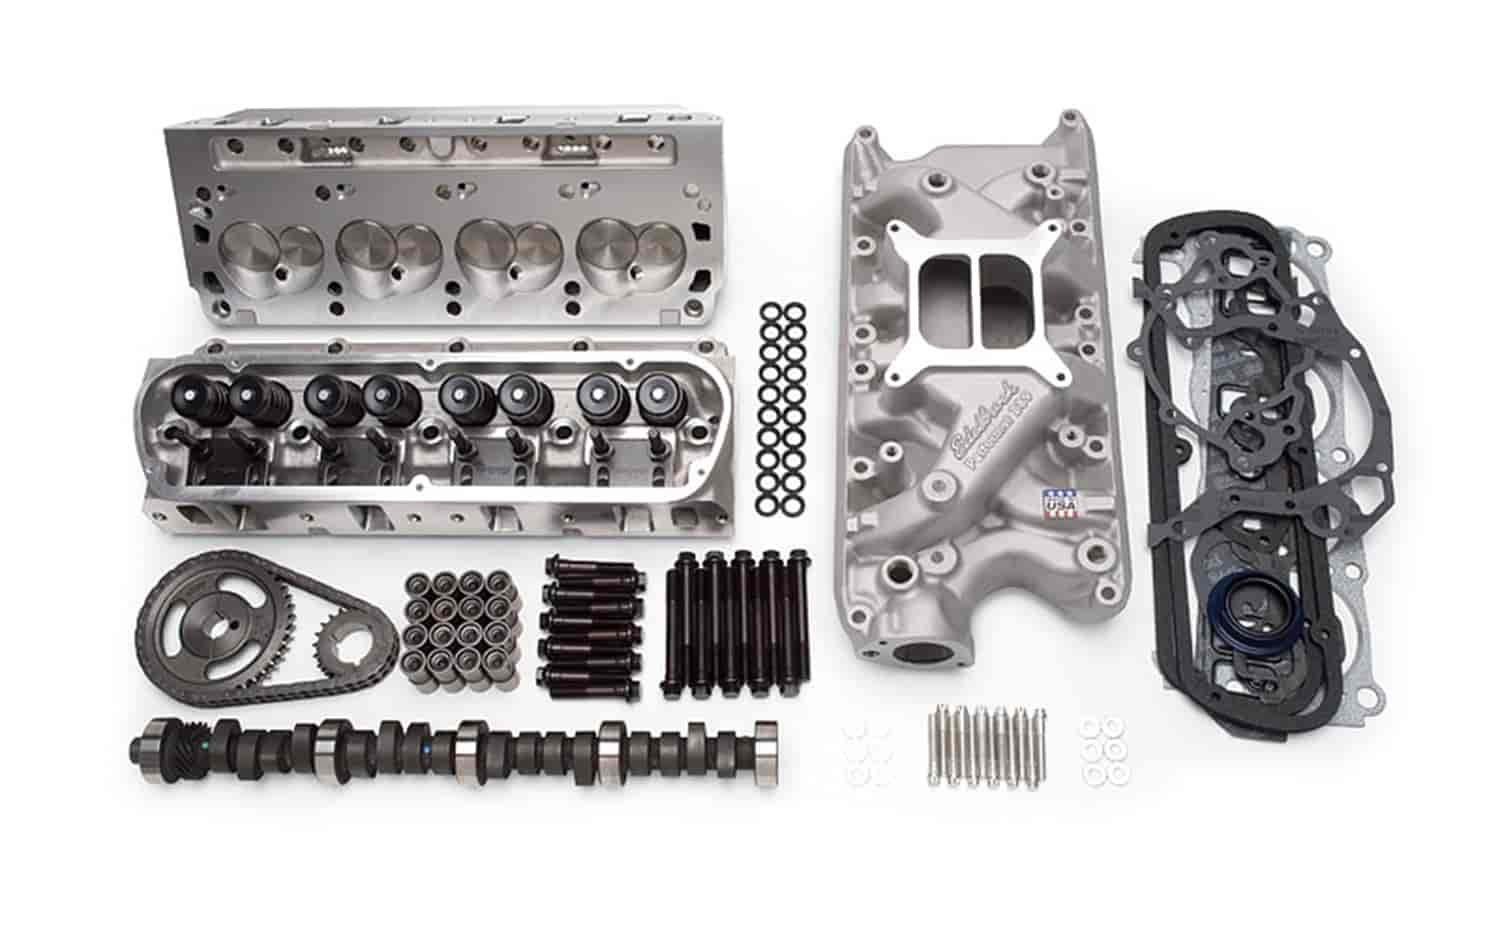 Edelbrock 2019 Rpm Power Package Top End Kit Small Block: Edelbrock 2027: E-Street Power Package Top End Kit For